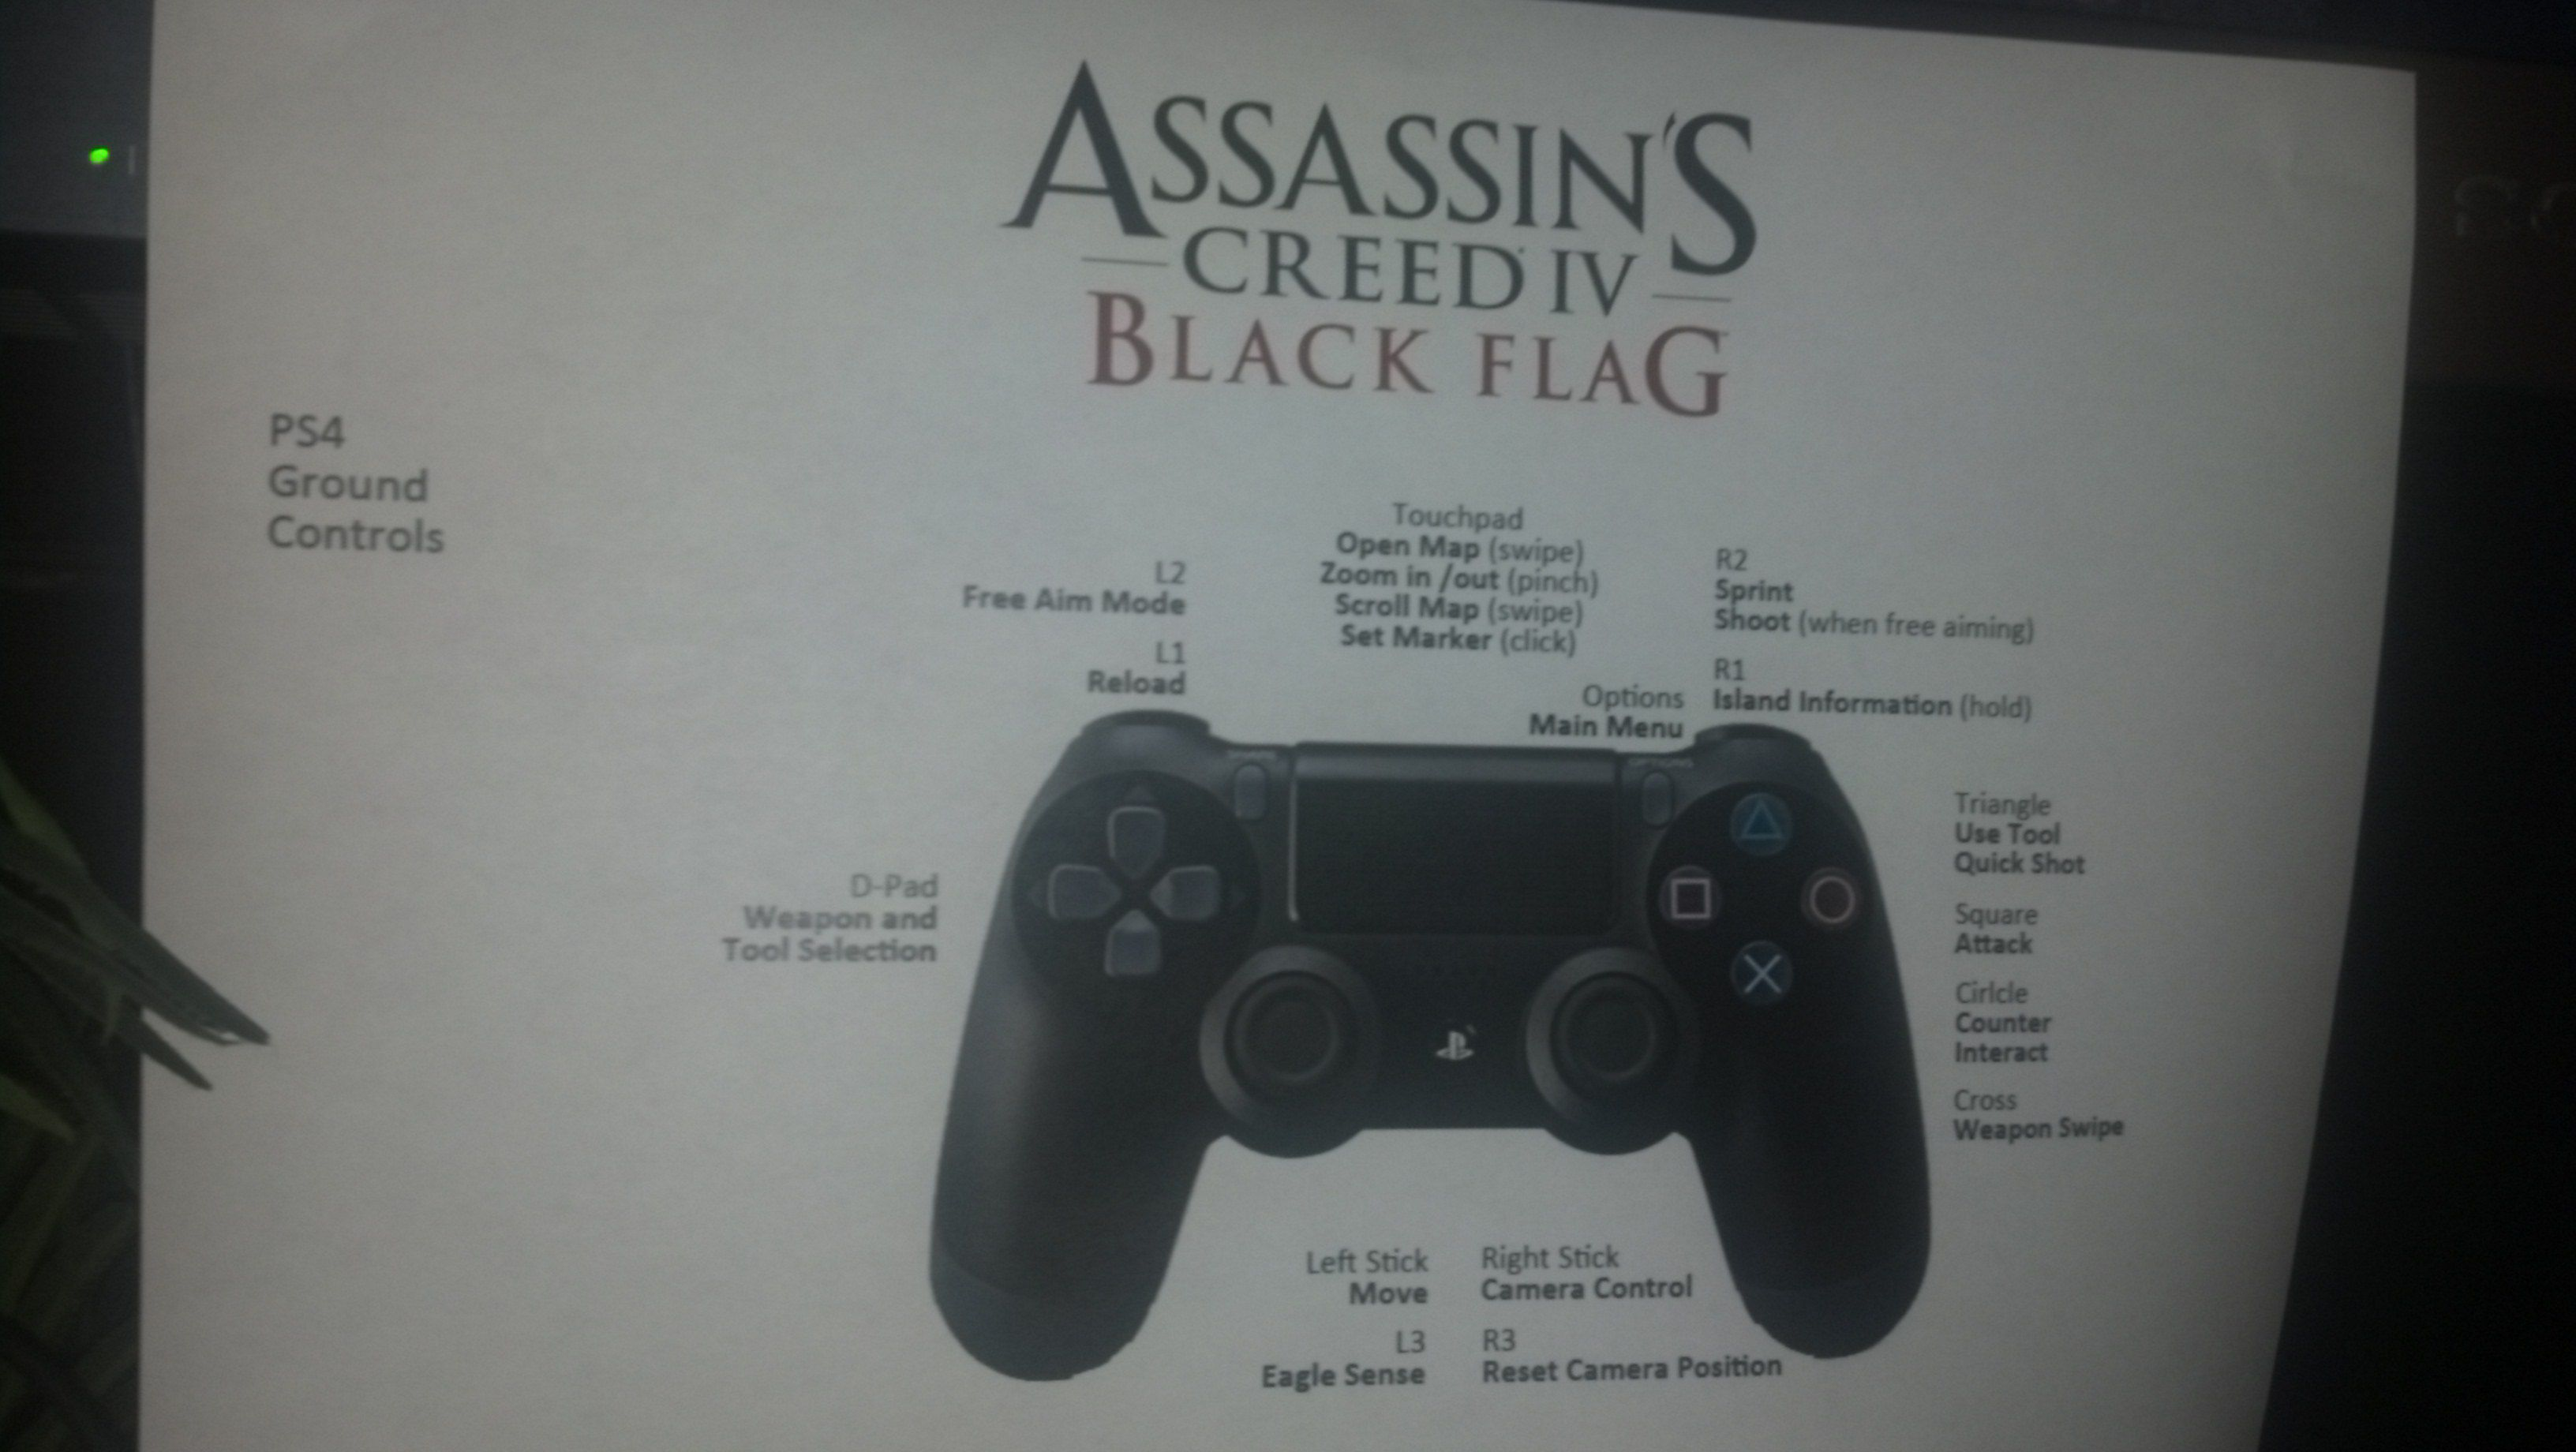 DualShock 4 Button-Belegung von Assassin's Creed 4